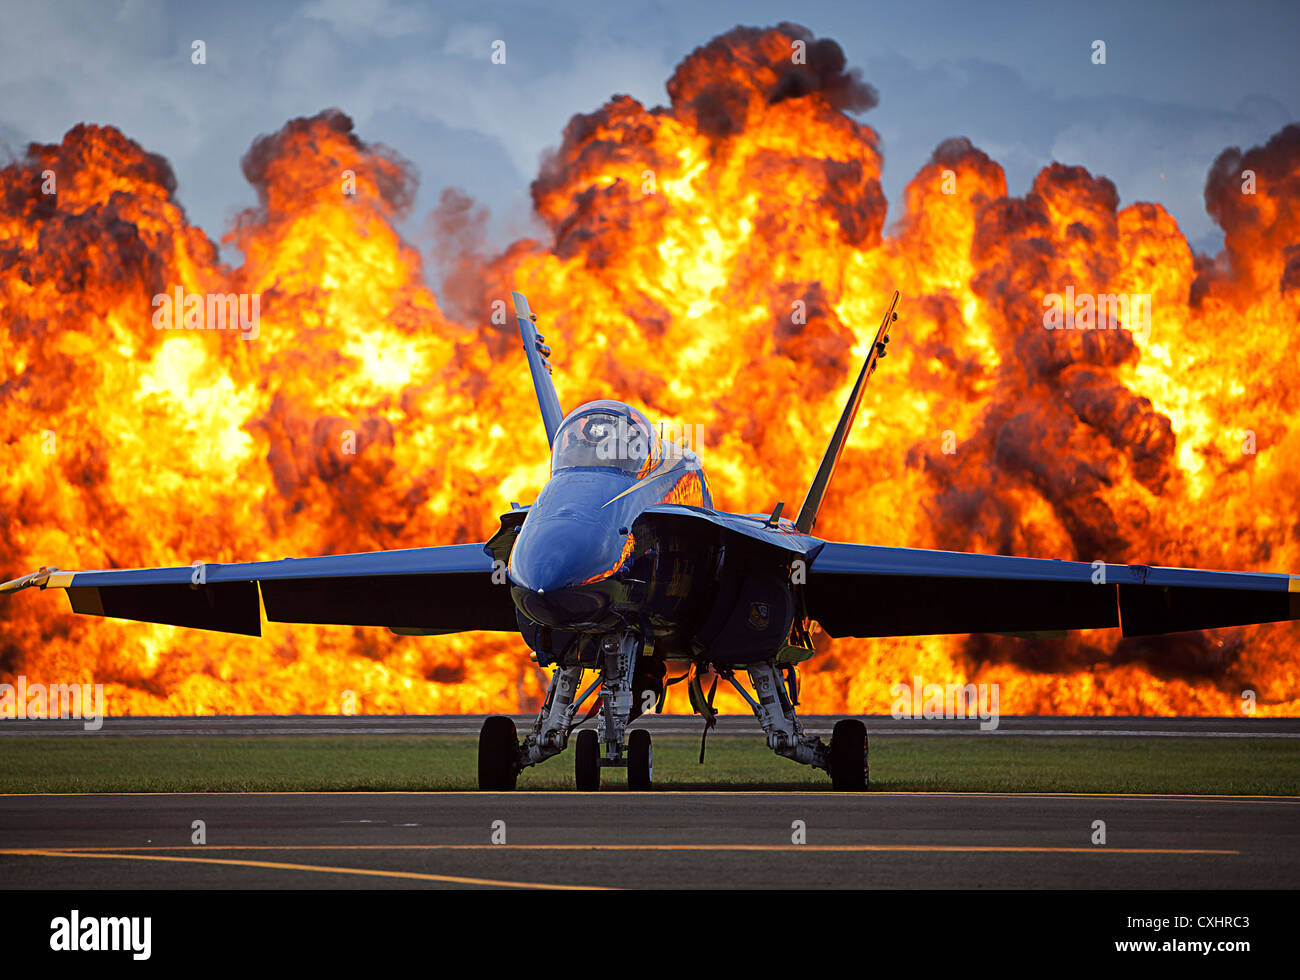 A wall of fire erupts behind a Blue Angels F/A-18 aircraft as part of a Marine Air-Ground Task Force demonstration - Stock Image